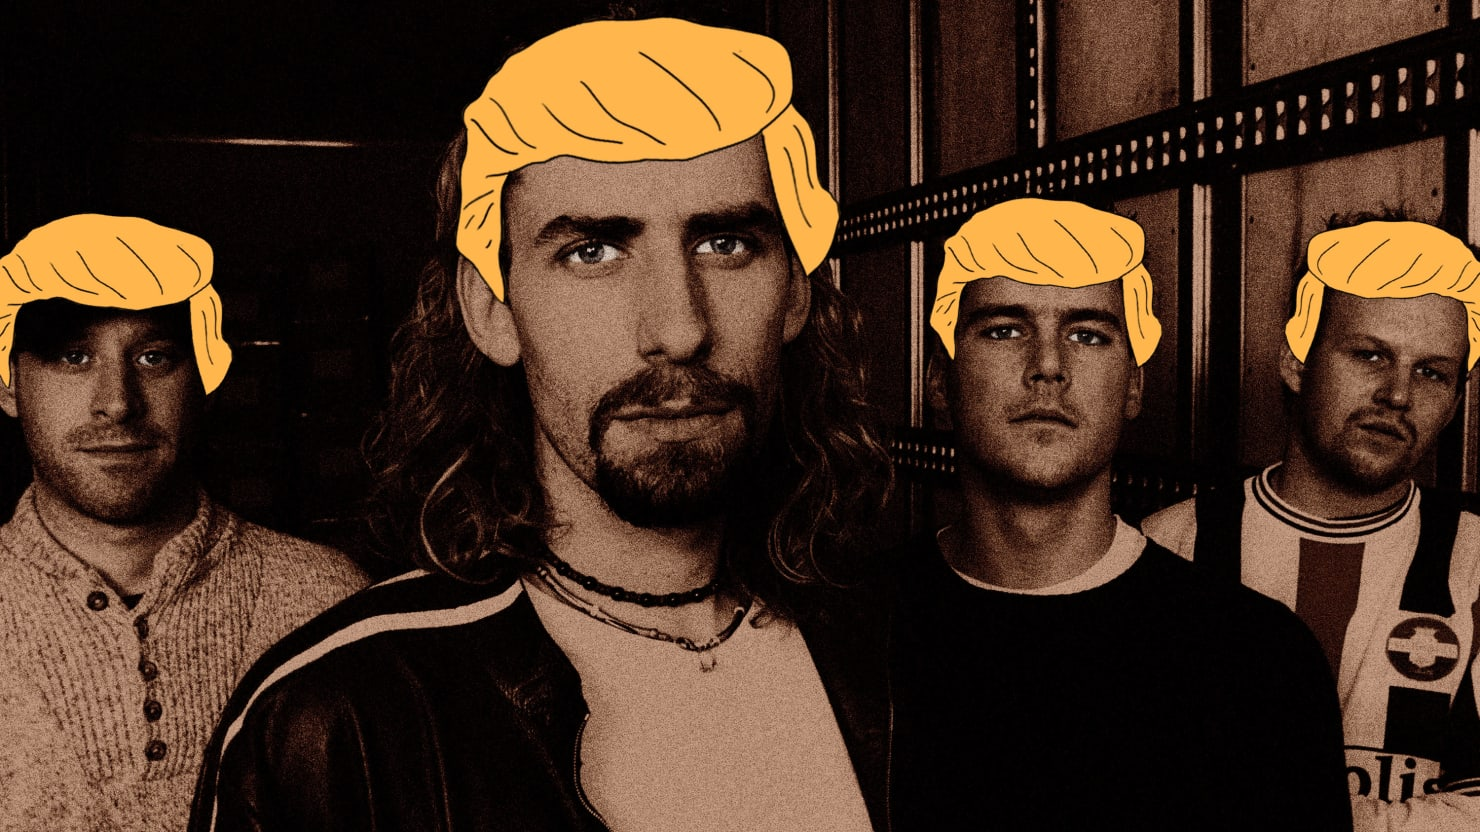 Trump Fans Are Enraged at Nickelback and Not For Their Music